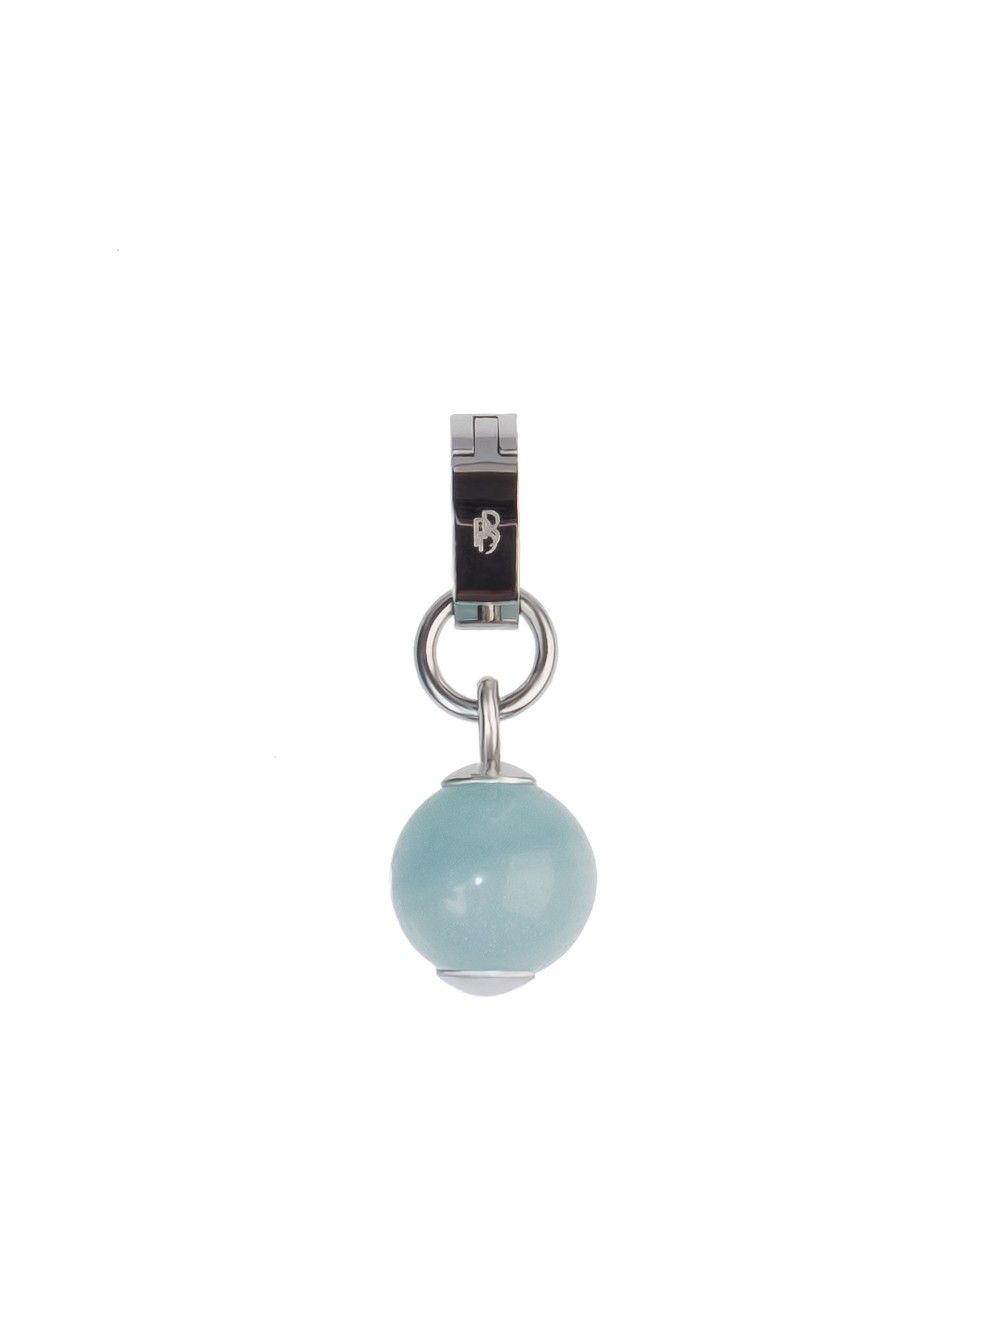 """Fancy and magical - silver-tone mini pendant """"Pixie Dust - Amazonite Dot"""" by Pedro de Bettencourt featuring a cabochon polished Amazonite - just clip-it!"""